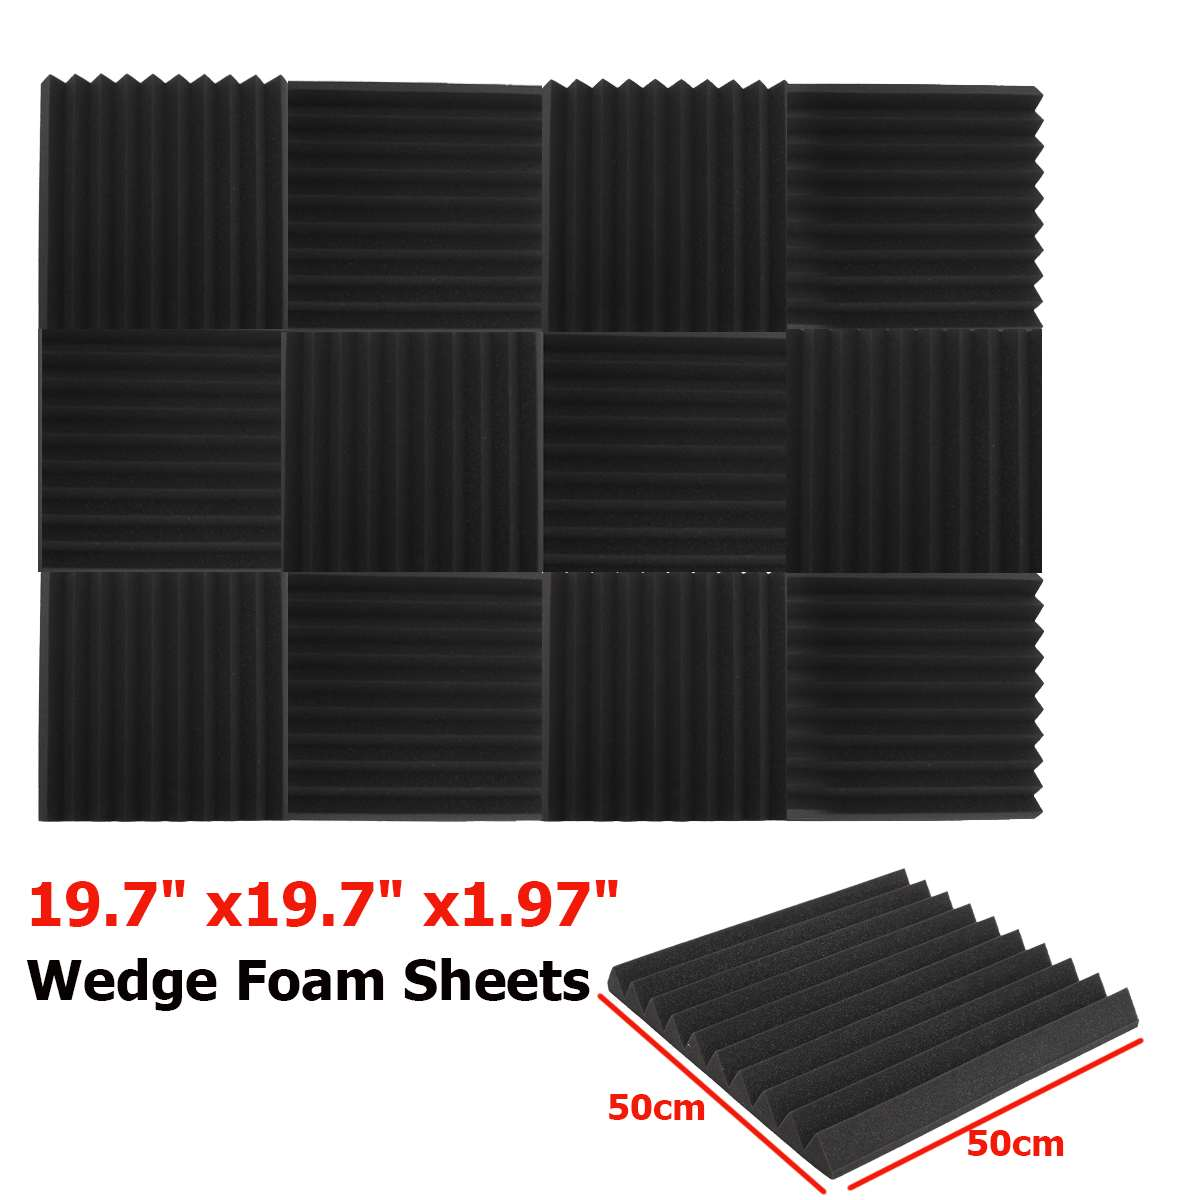 1PC Acoustic Wedge Studio Soundproofing Foam Wall Tiles 50 x 50 x 5 cm Black1PC Acoustic Wedge Studio Soundproofing Foam Wall Tiles 50 x 50 x 5 cm Black